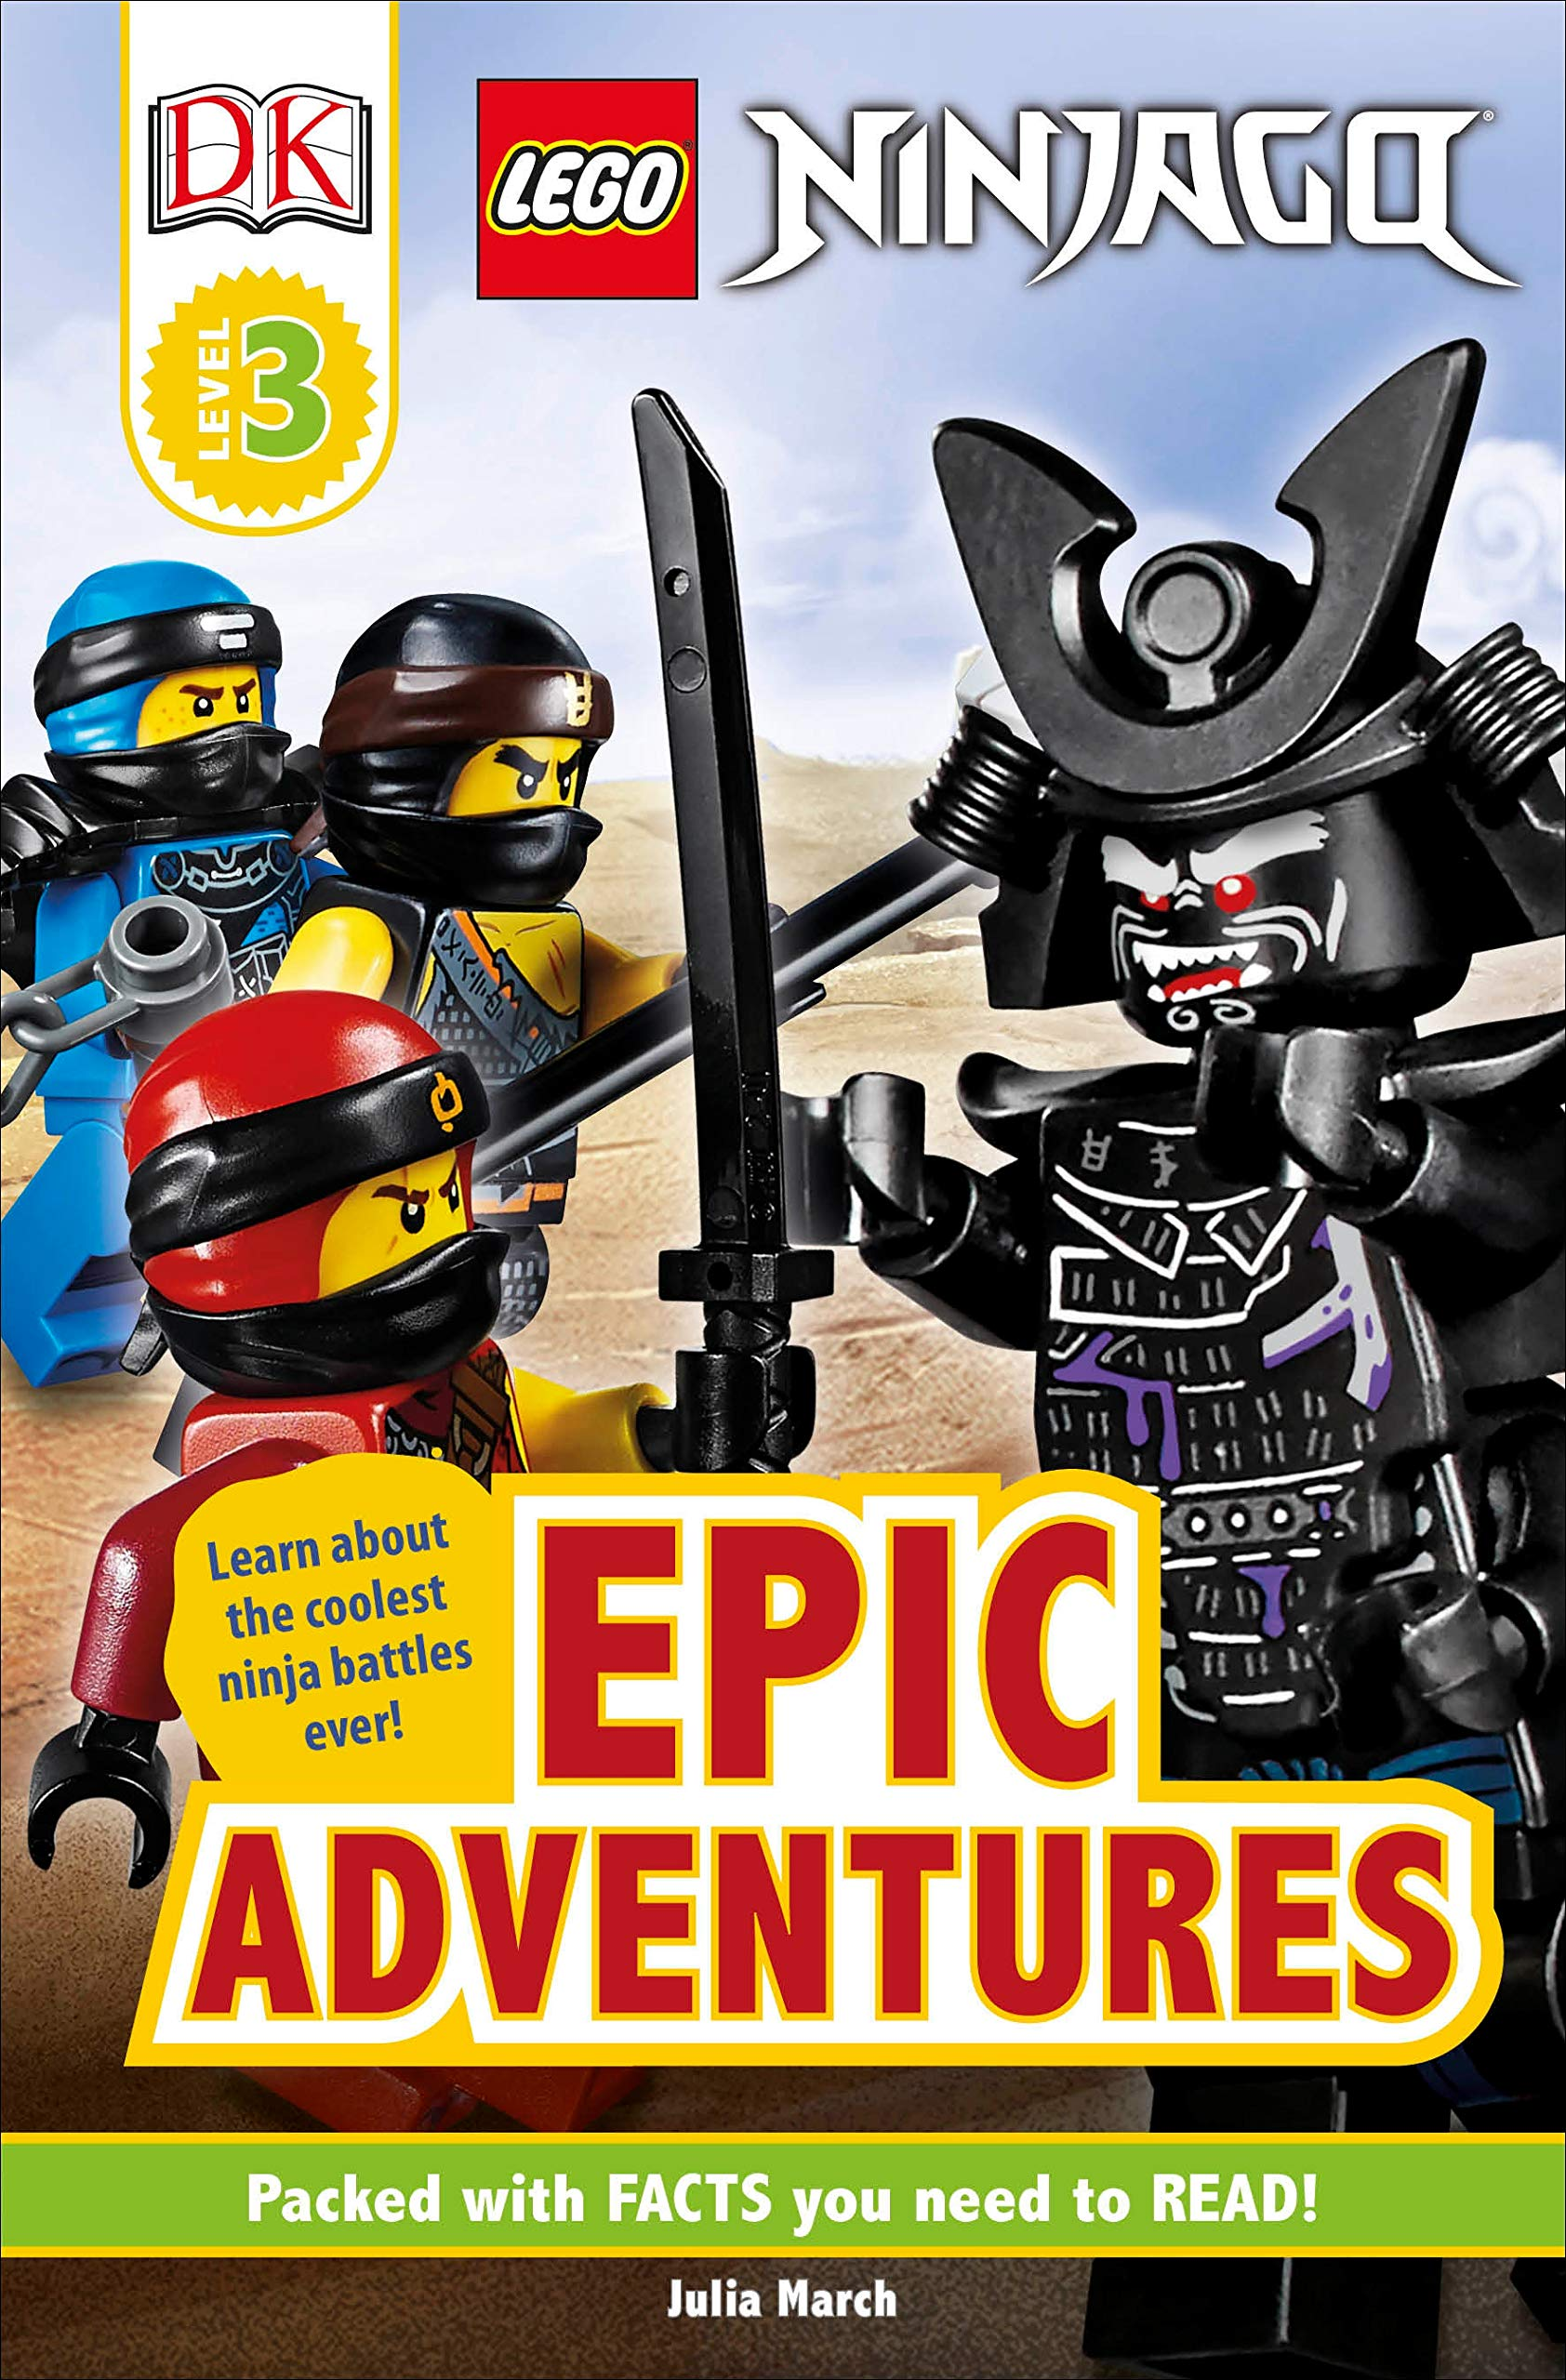 Amazon.com: DK Readers Level 3: LEGO NINJAGO: Epic ...